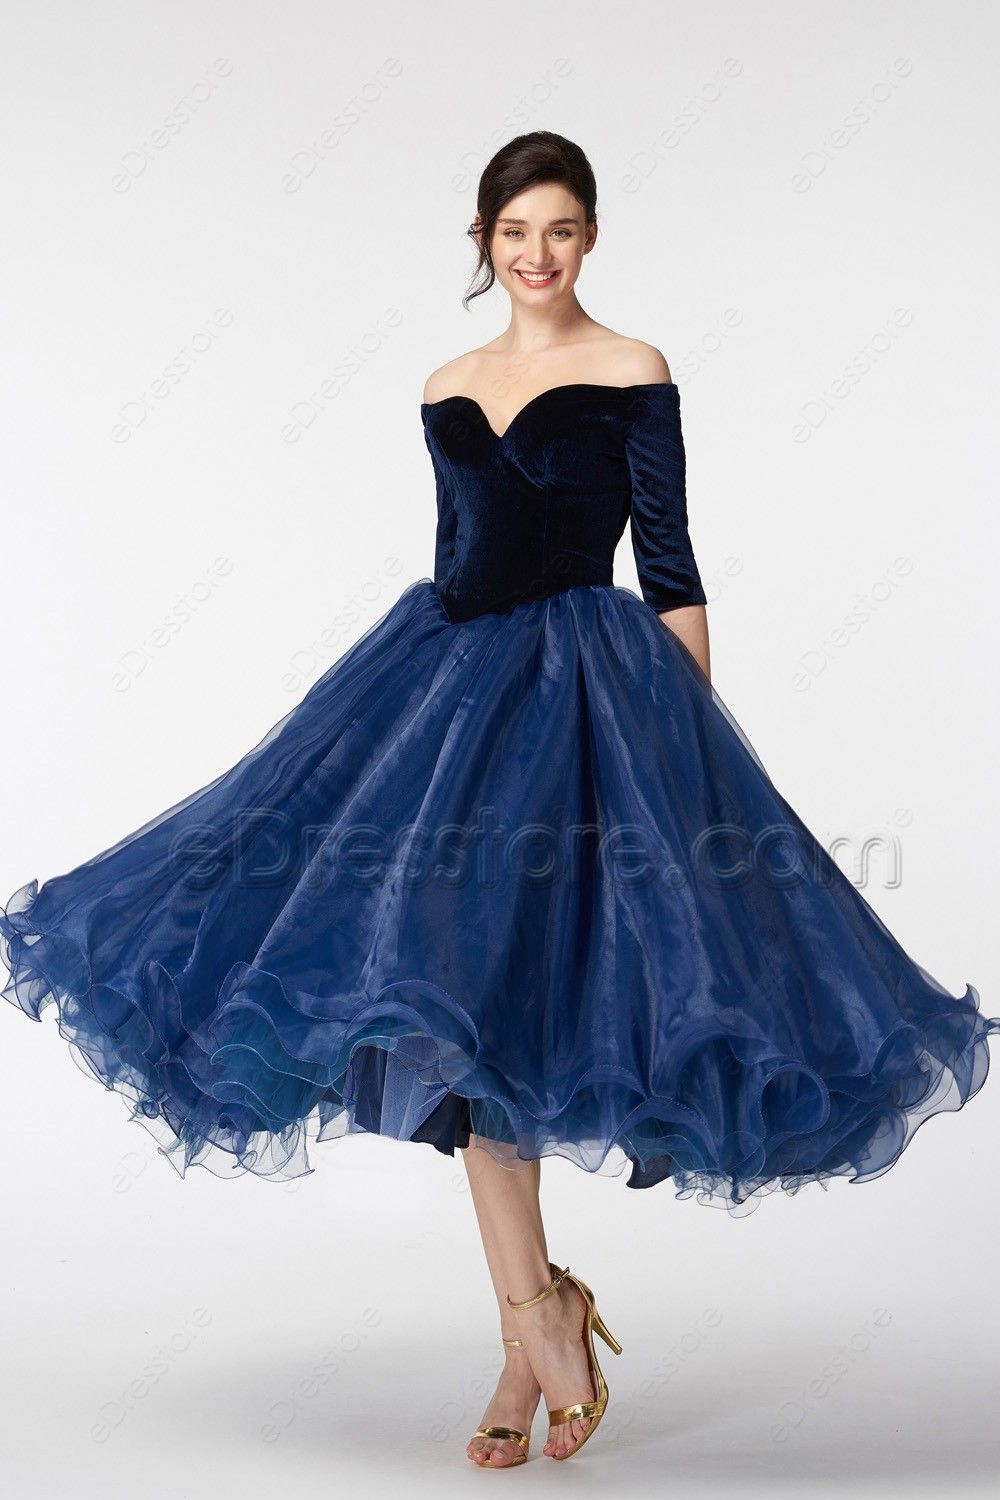 cf65a6357898 The navy blue vintage prom dress features the most popular off the shoulder  neckline